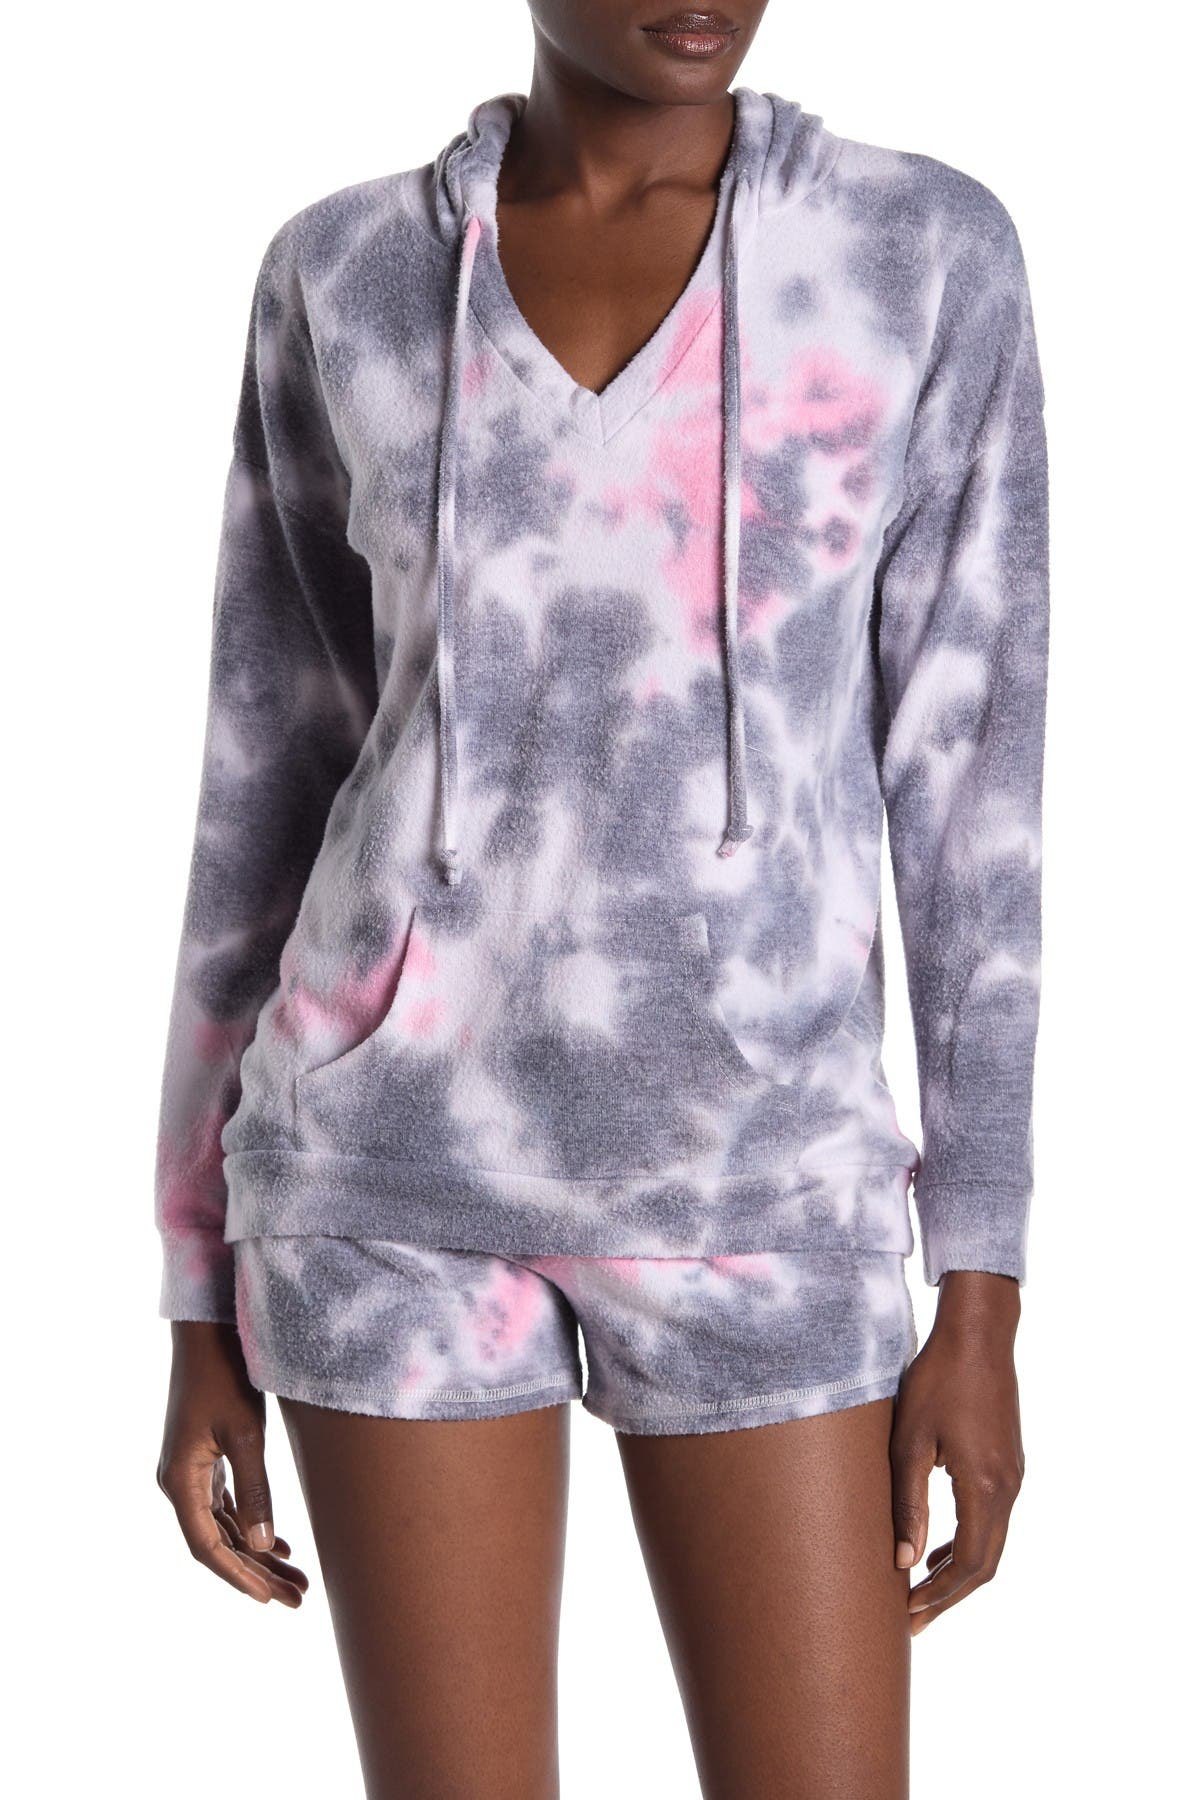 Image of Theo and Spence Tie Dye Hoodie